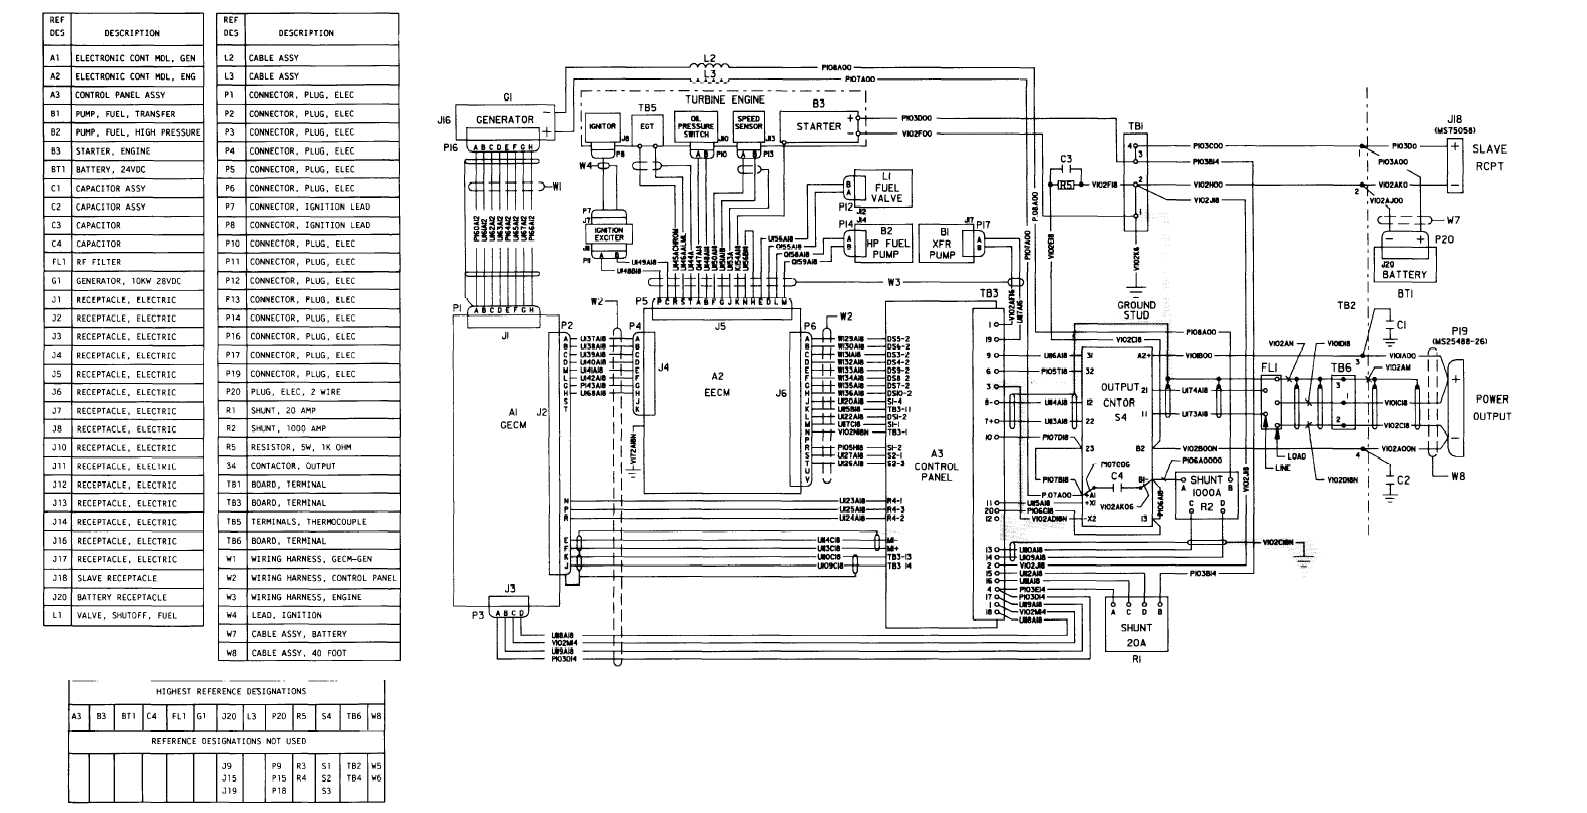 Wiring Diagram Generator Set Library Diagrams For Transfer Switches